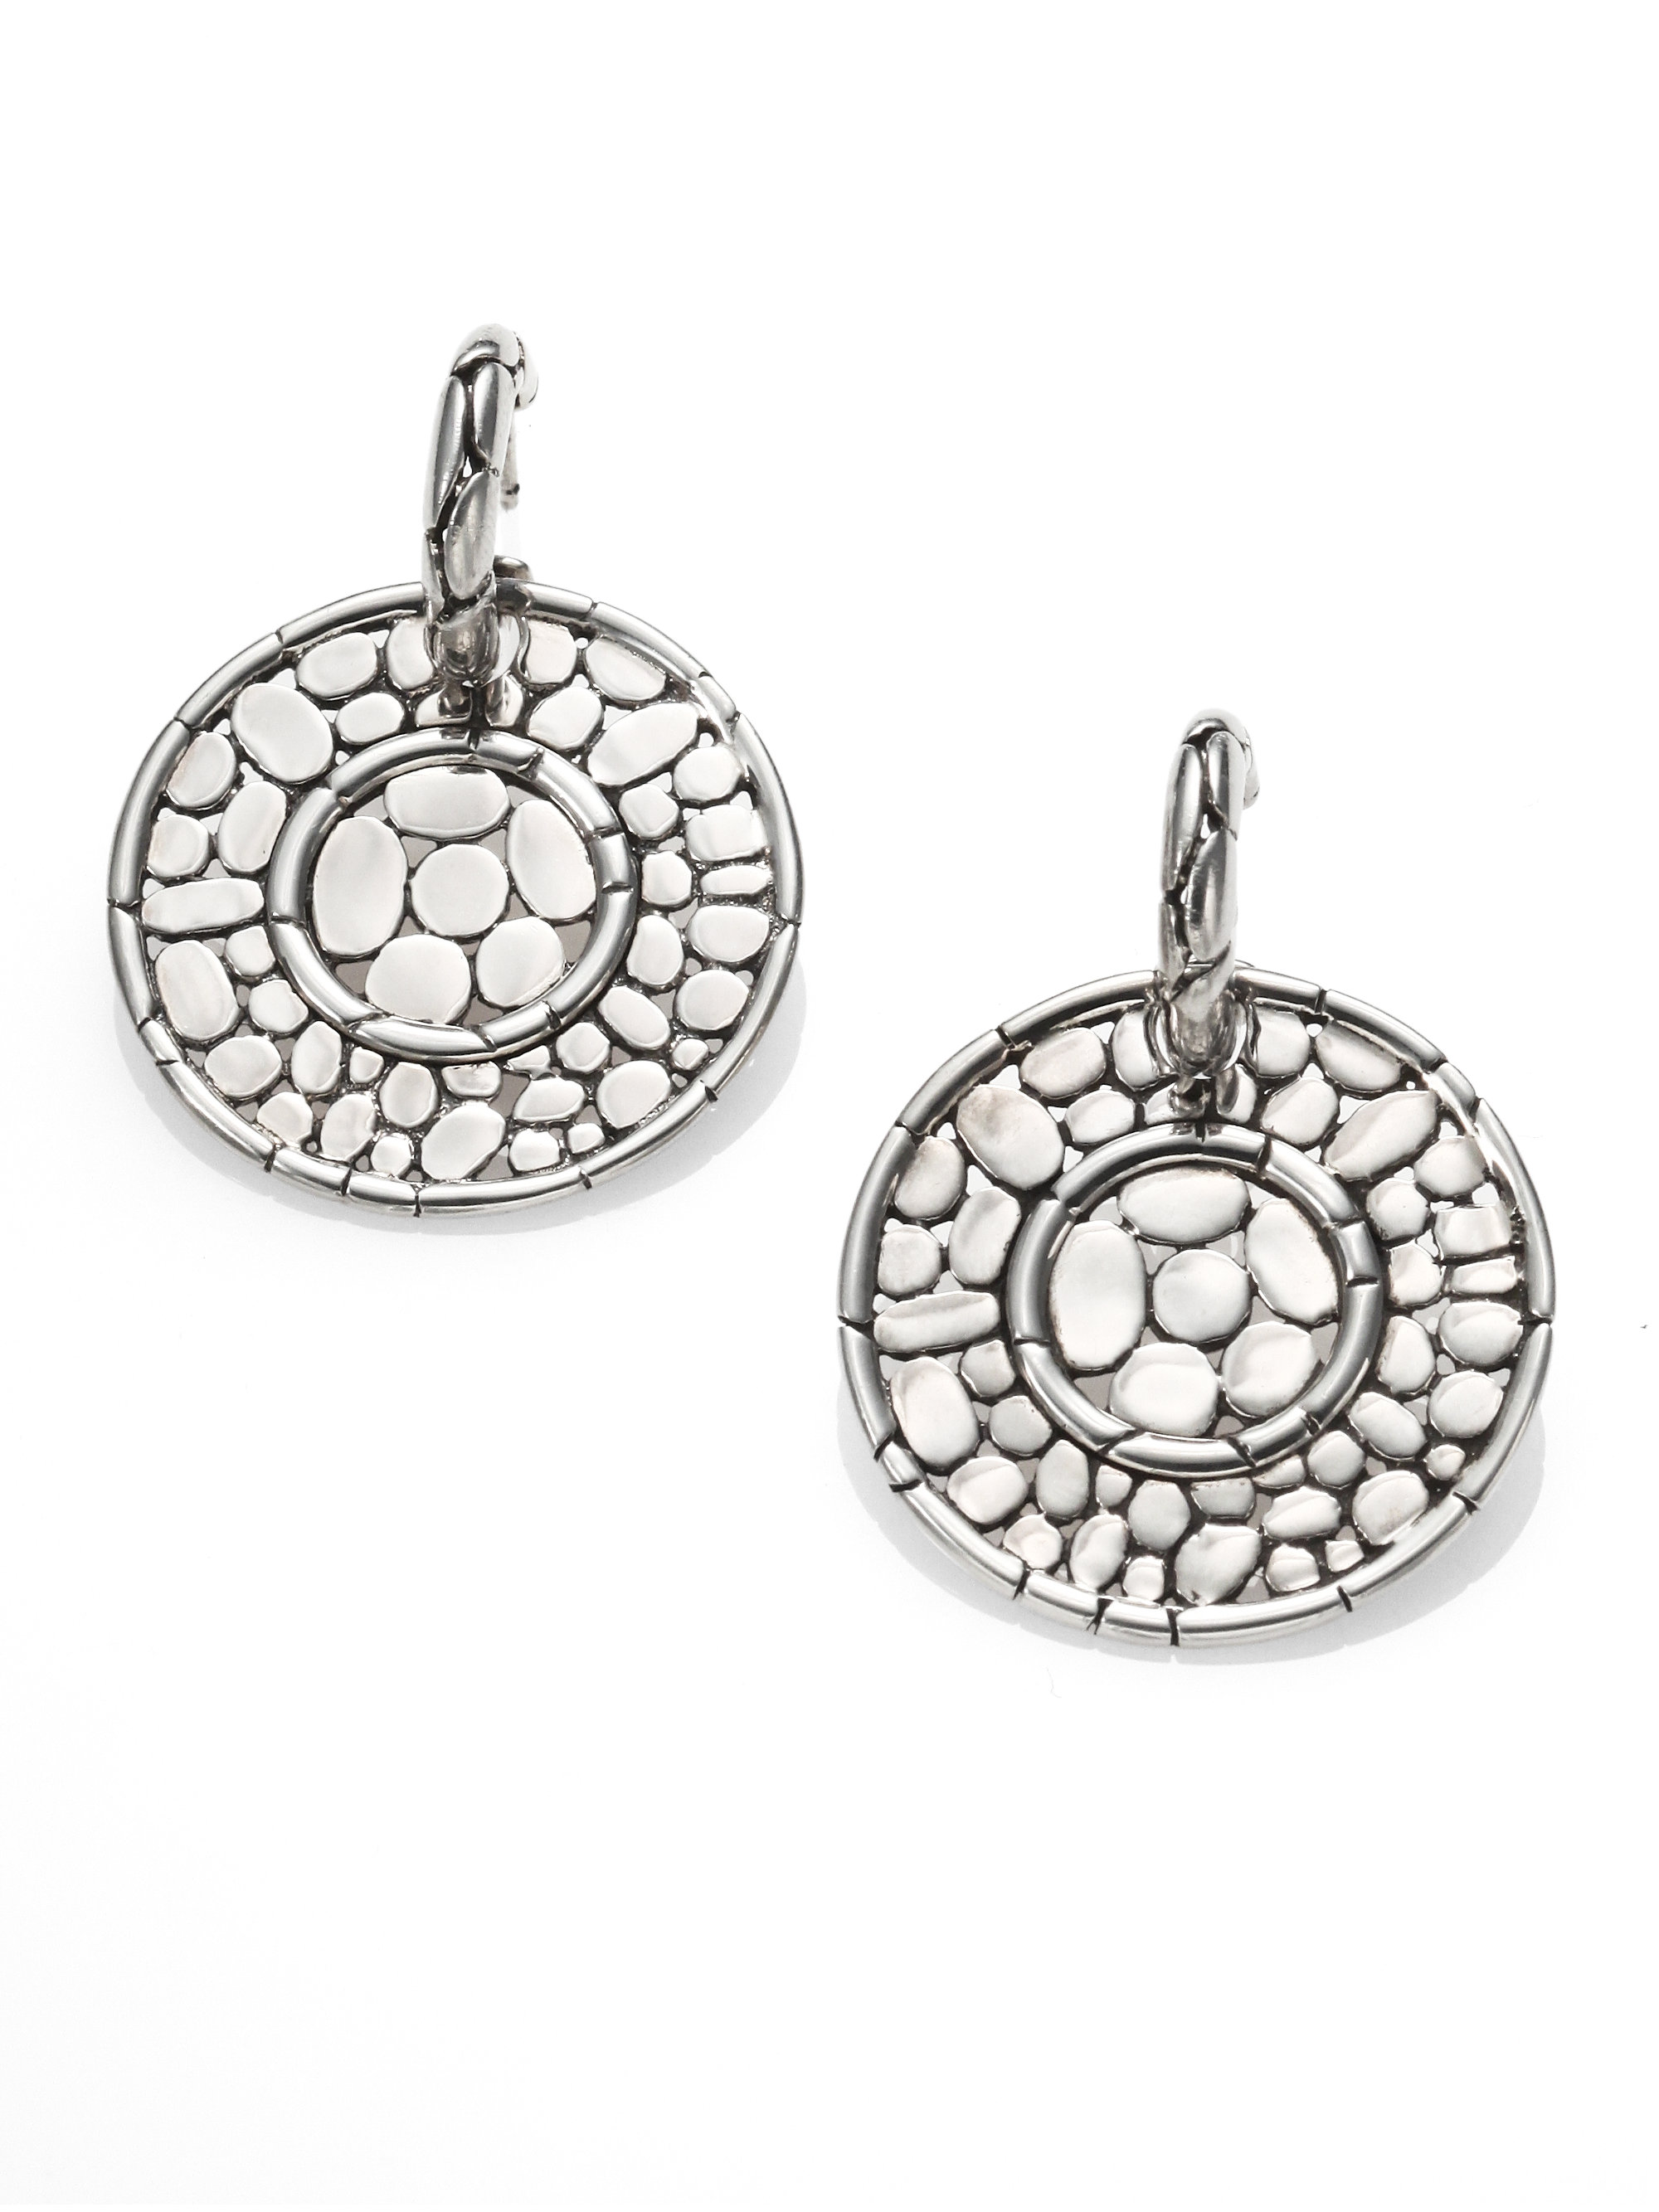 Lyst John Hardy Sterling Silver Disc Drop Earrings In Metallic